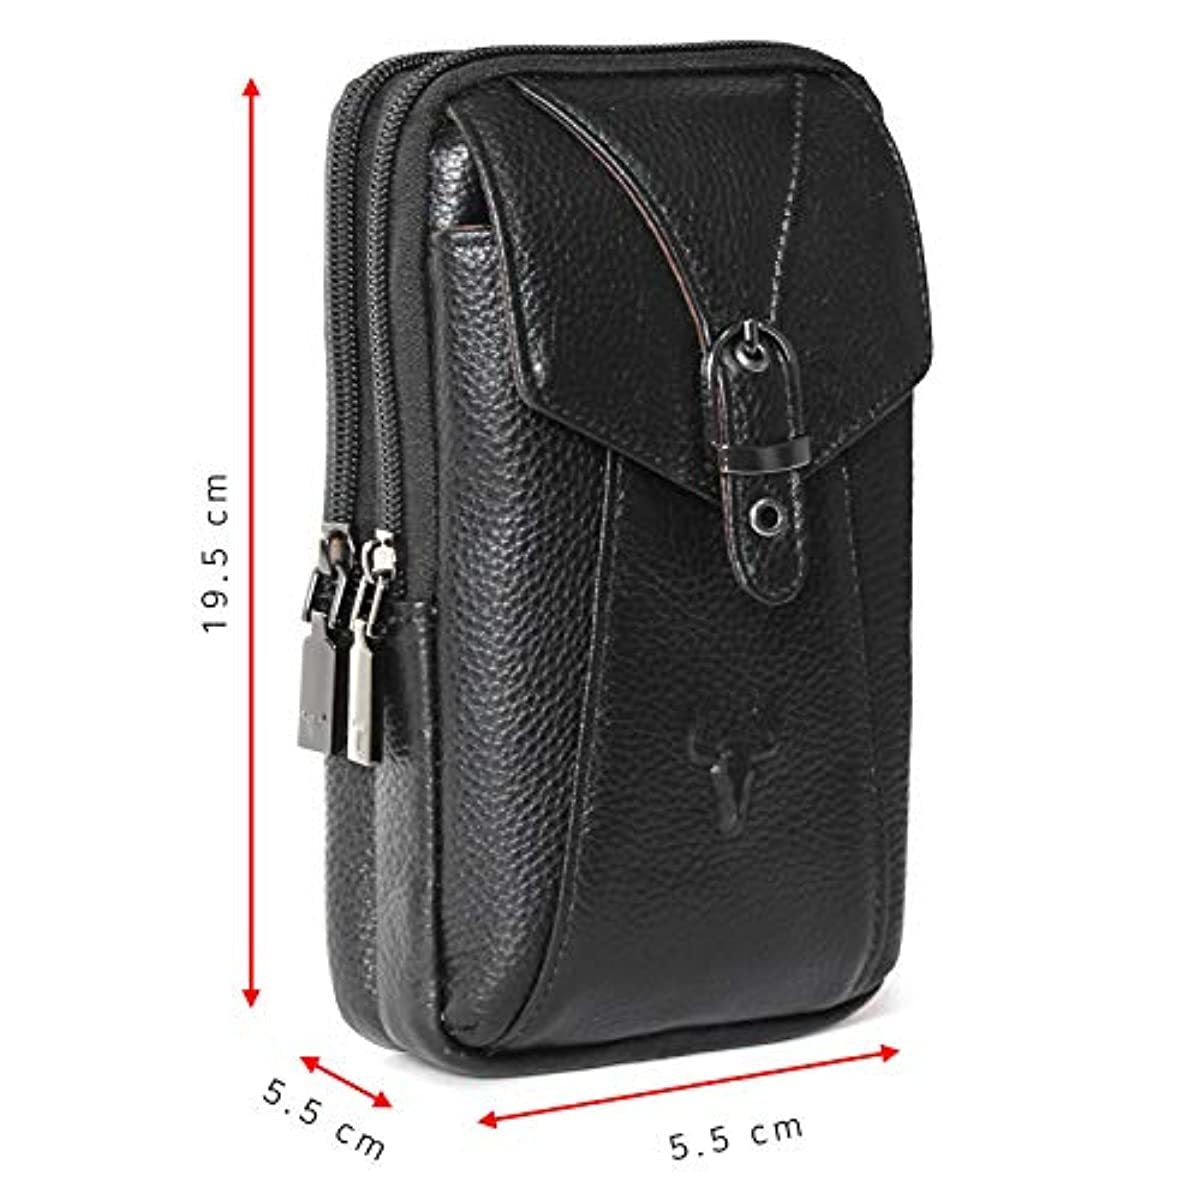 Phone purse iPhone 11 Pro Max Leather Cell phone Holster Case Belt Loop Pouch Travel Messenger Bag Black 2185 - ENCACC